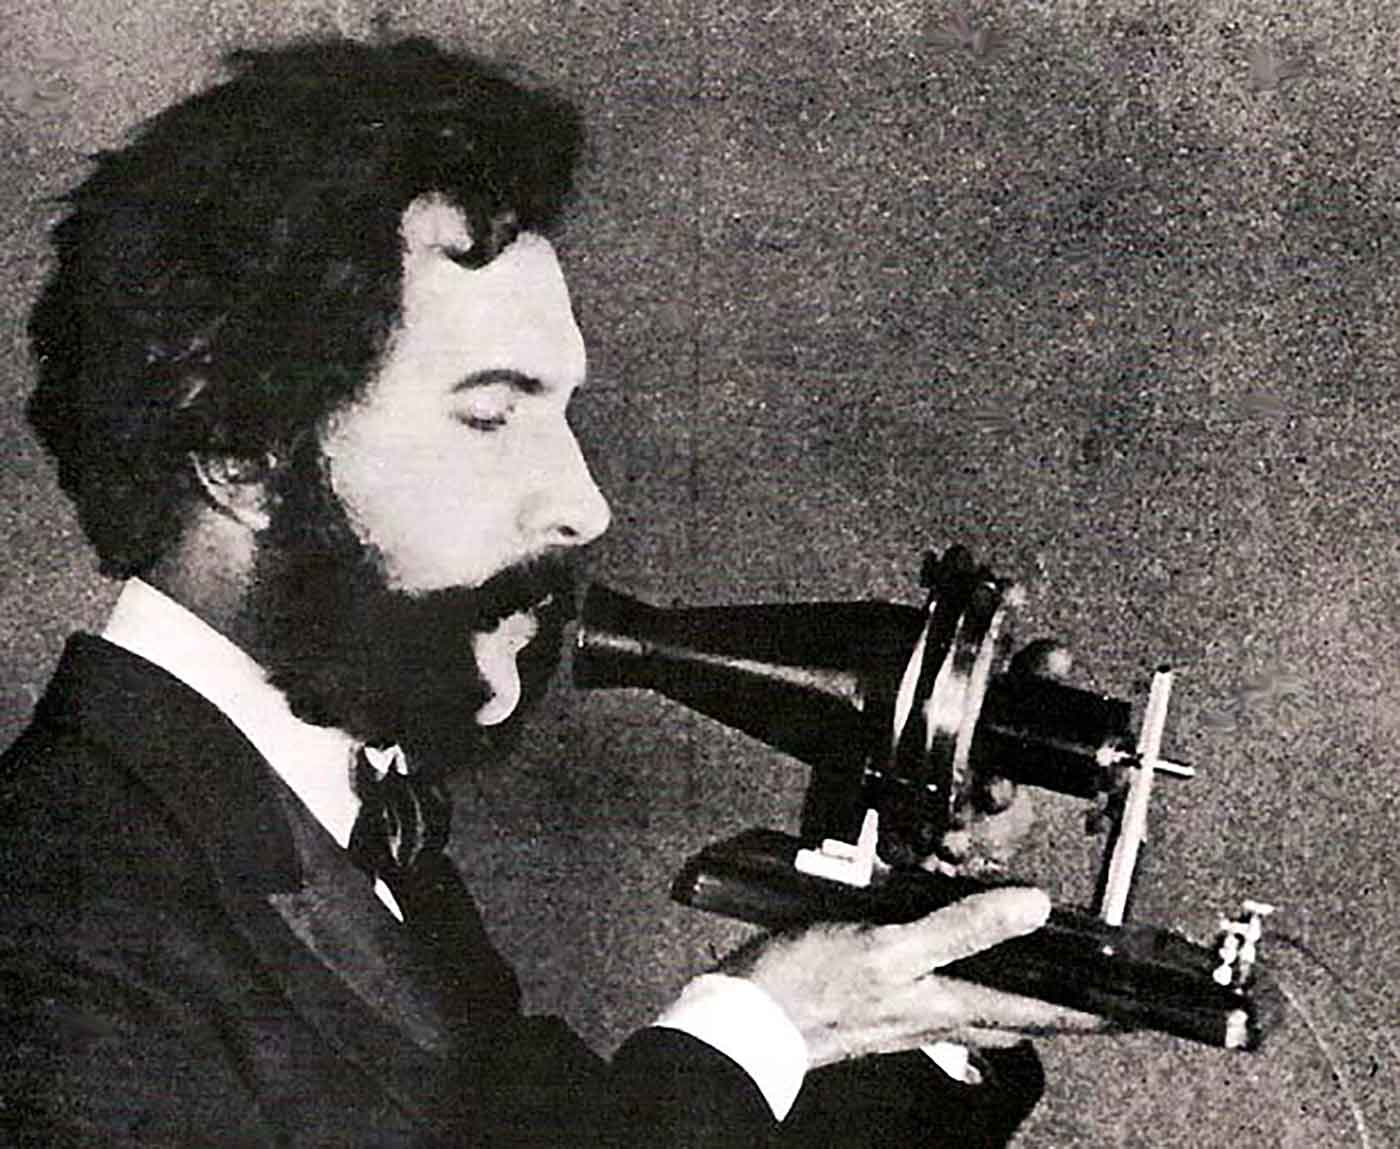 An actor portraying Alexander Graham Bell speaking into a early model of the telephone for a 1926 promotional film by the American Telephone & Telegraph Company (AT&T).